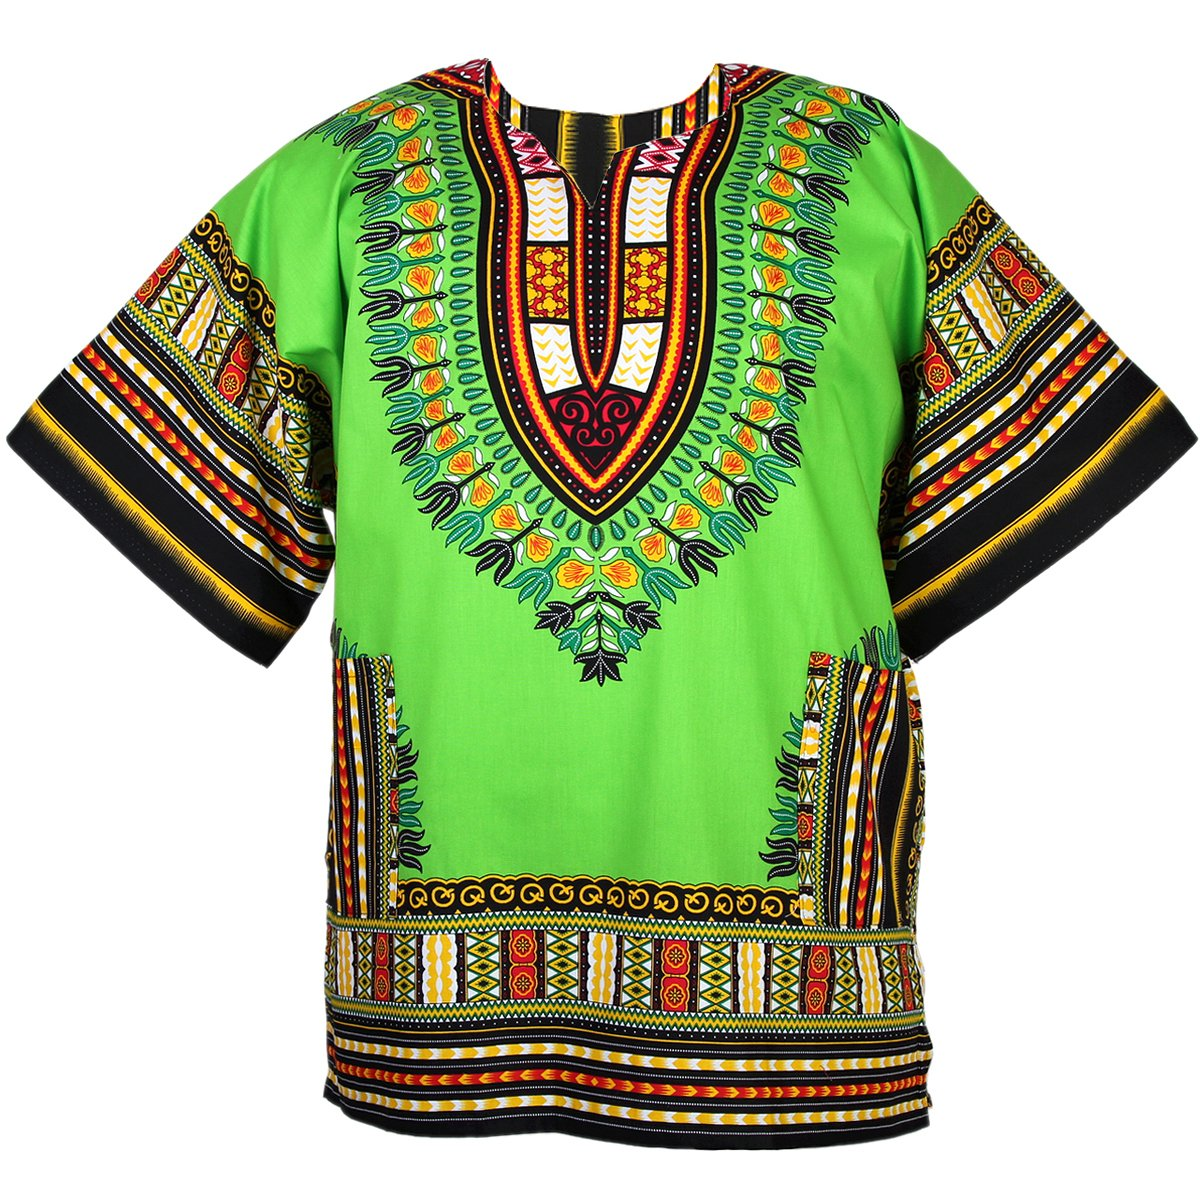 African Dashiki Cotton Mexican Poncho One Size Fits Most Shirt Green ad073t